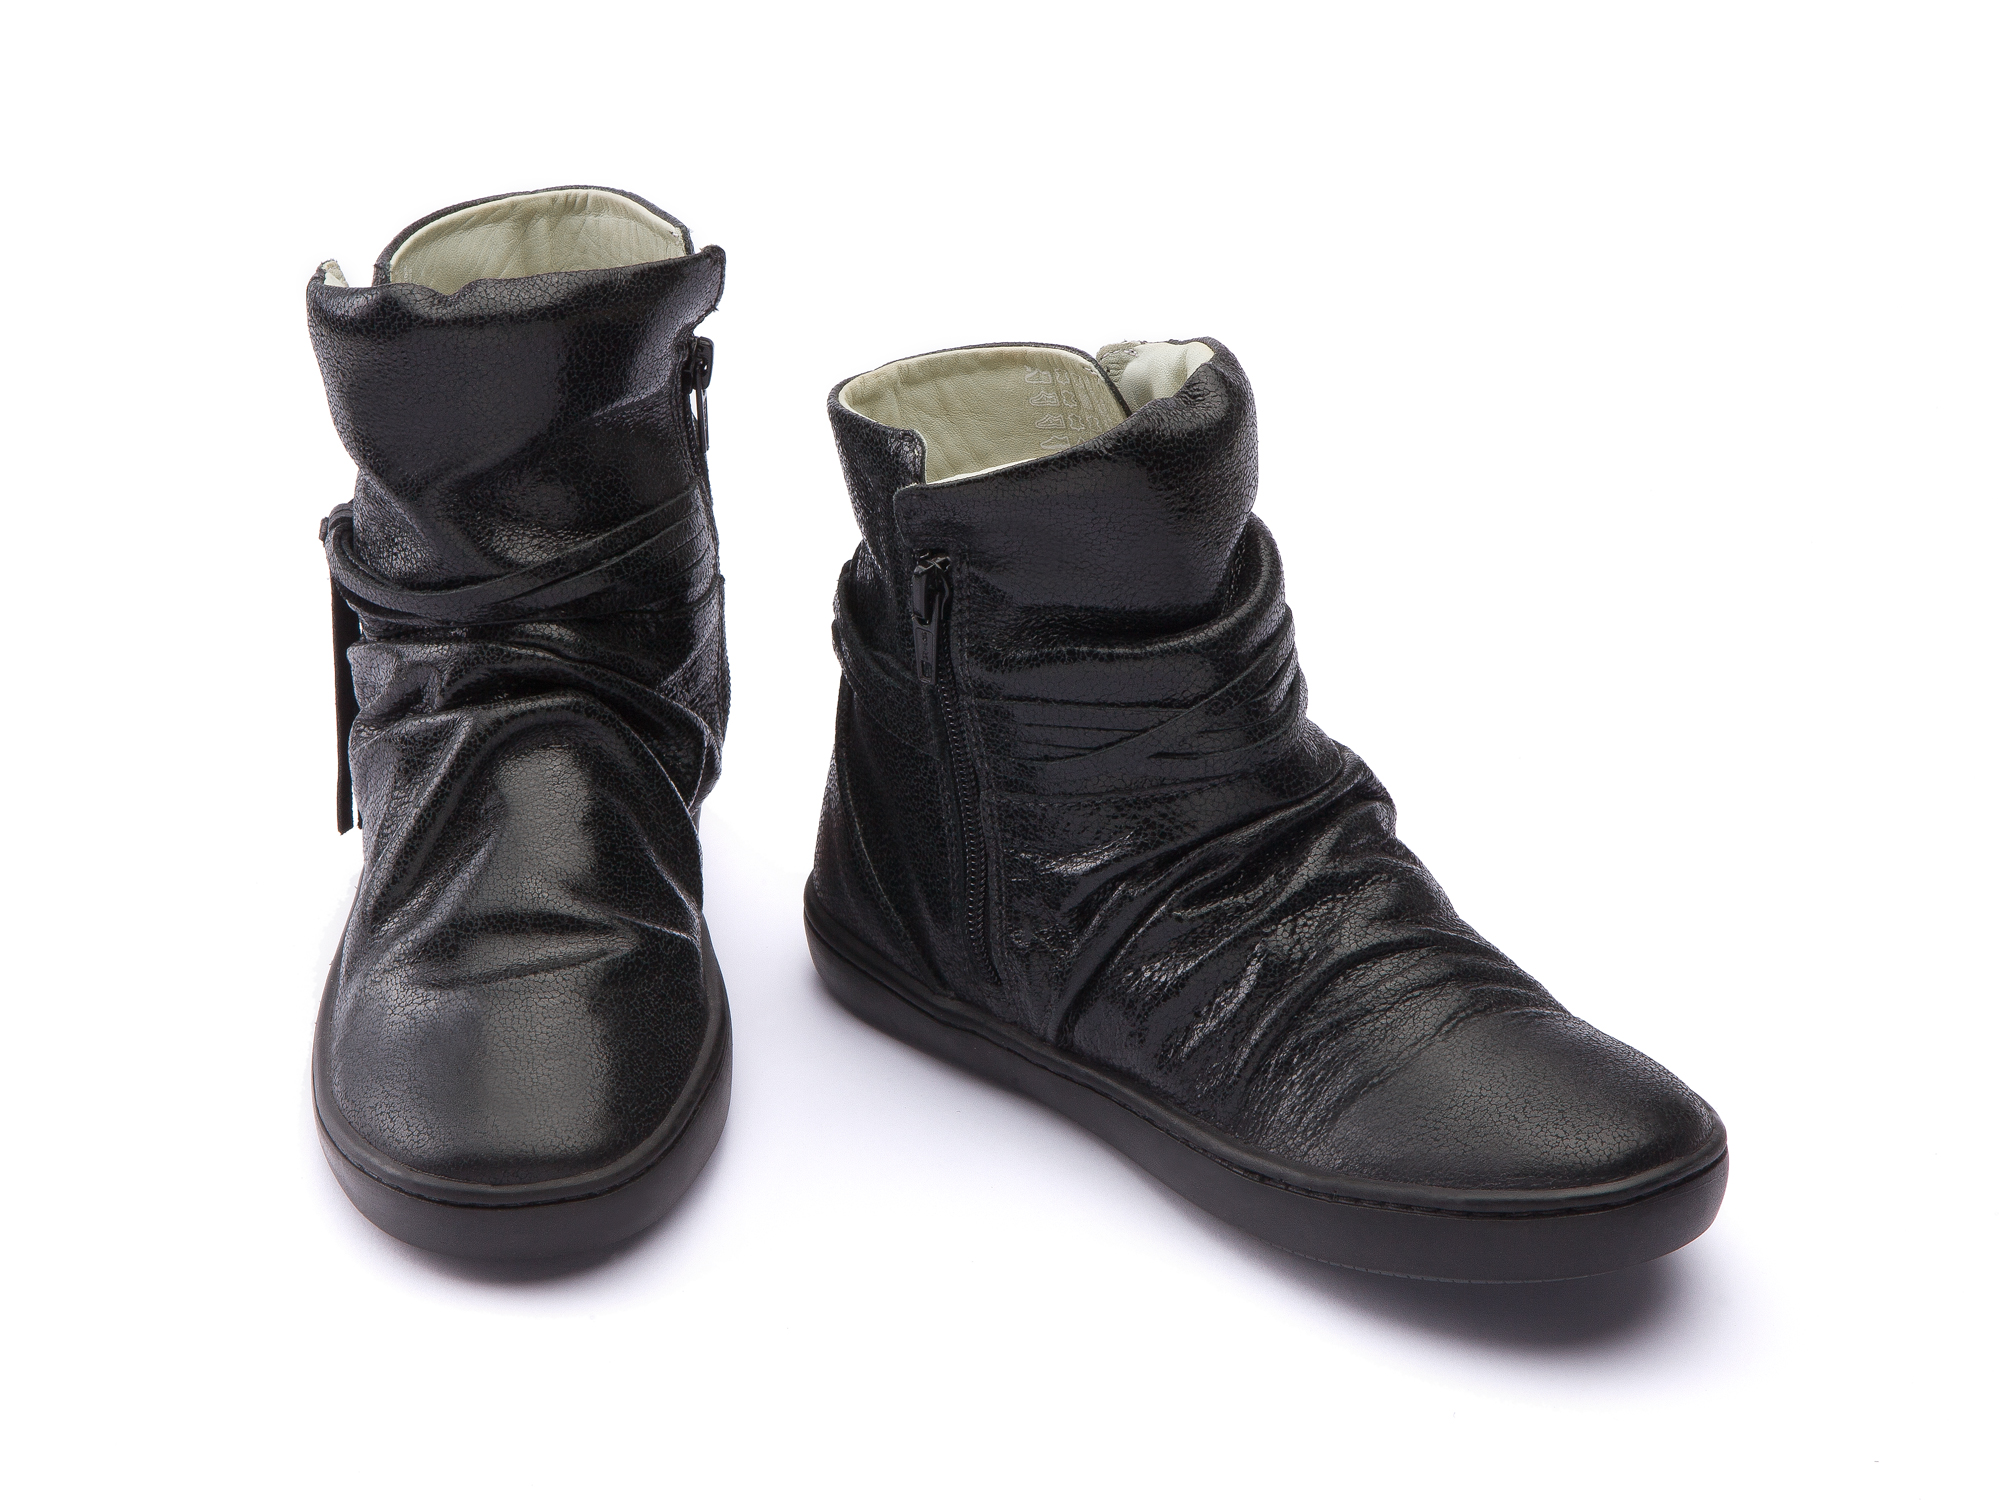 Bota Ridge Black Shine Junior 4 à 8 anos - 1